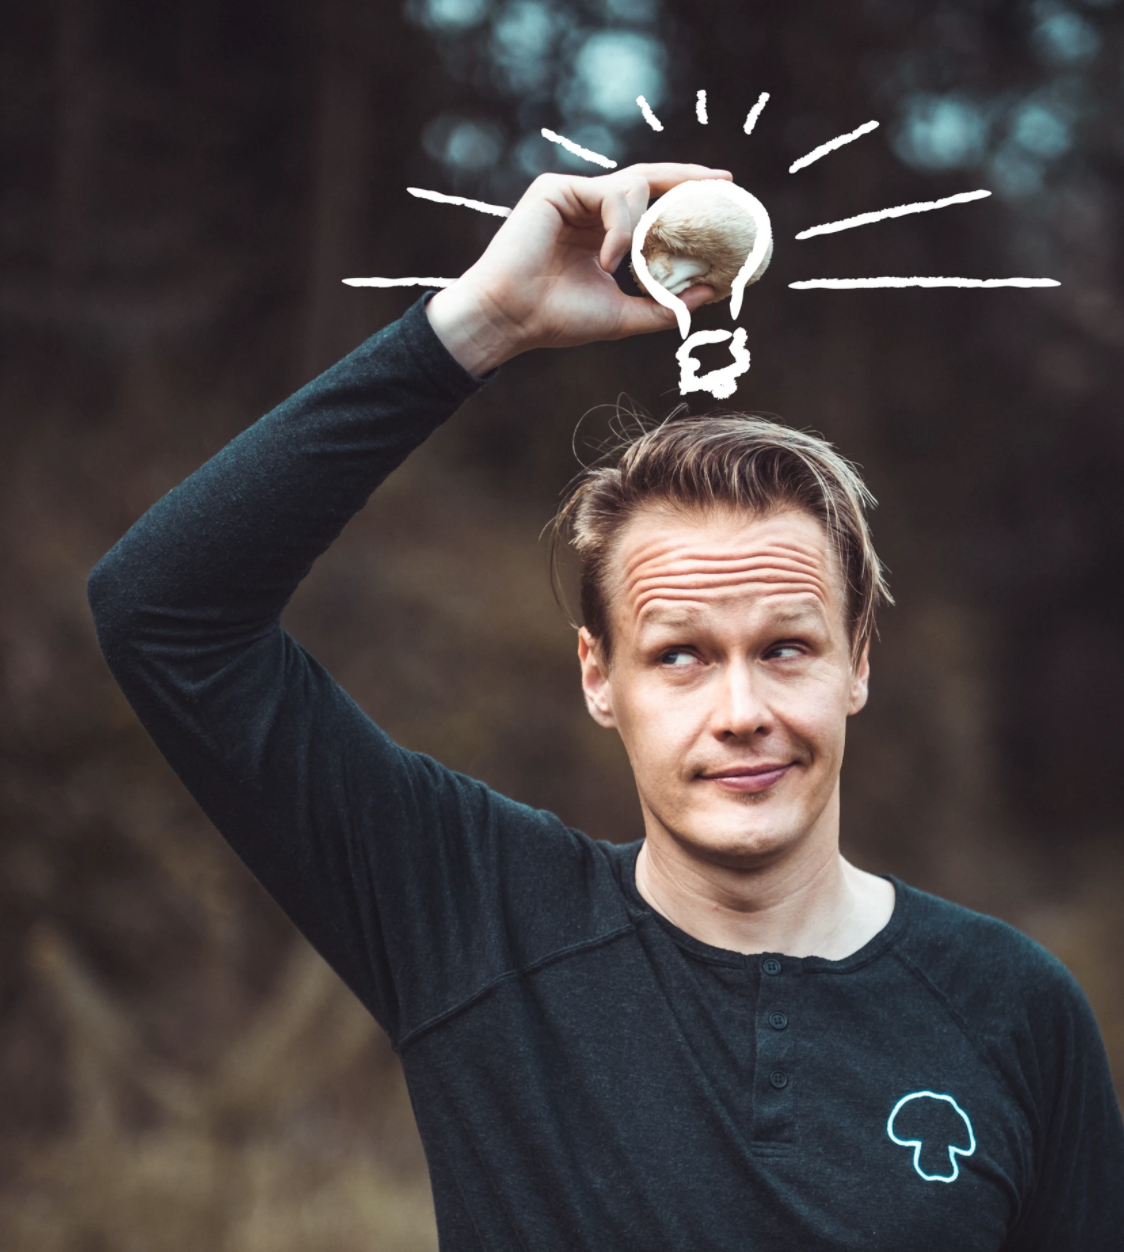 Four Sigmatic founder Tero Isokauppila poses with a mushroom in a promotional image.